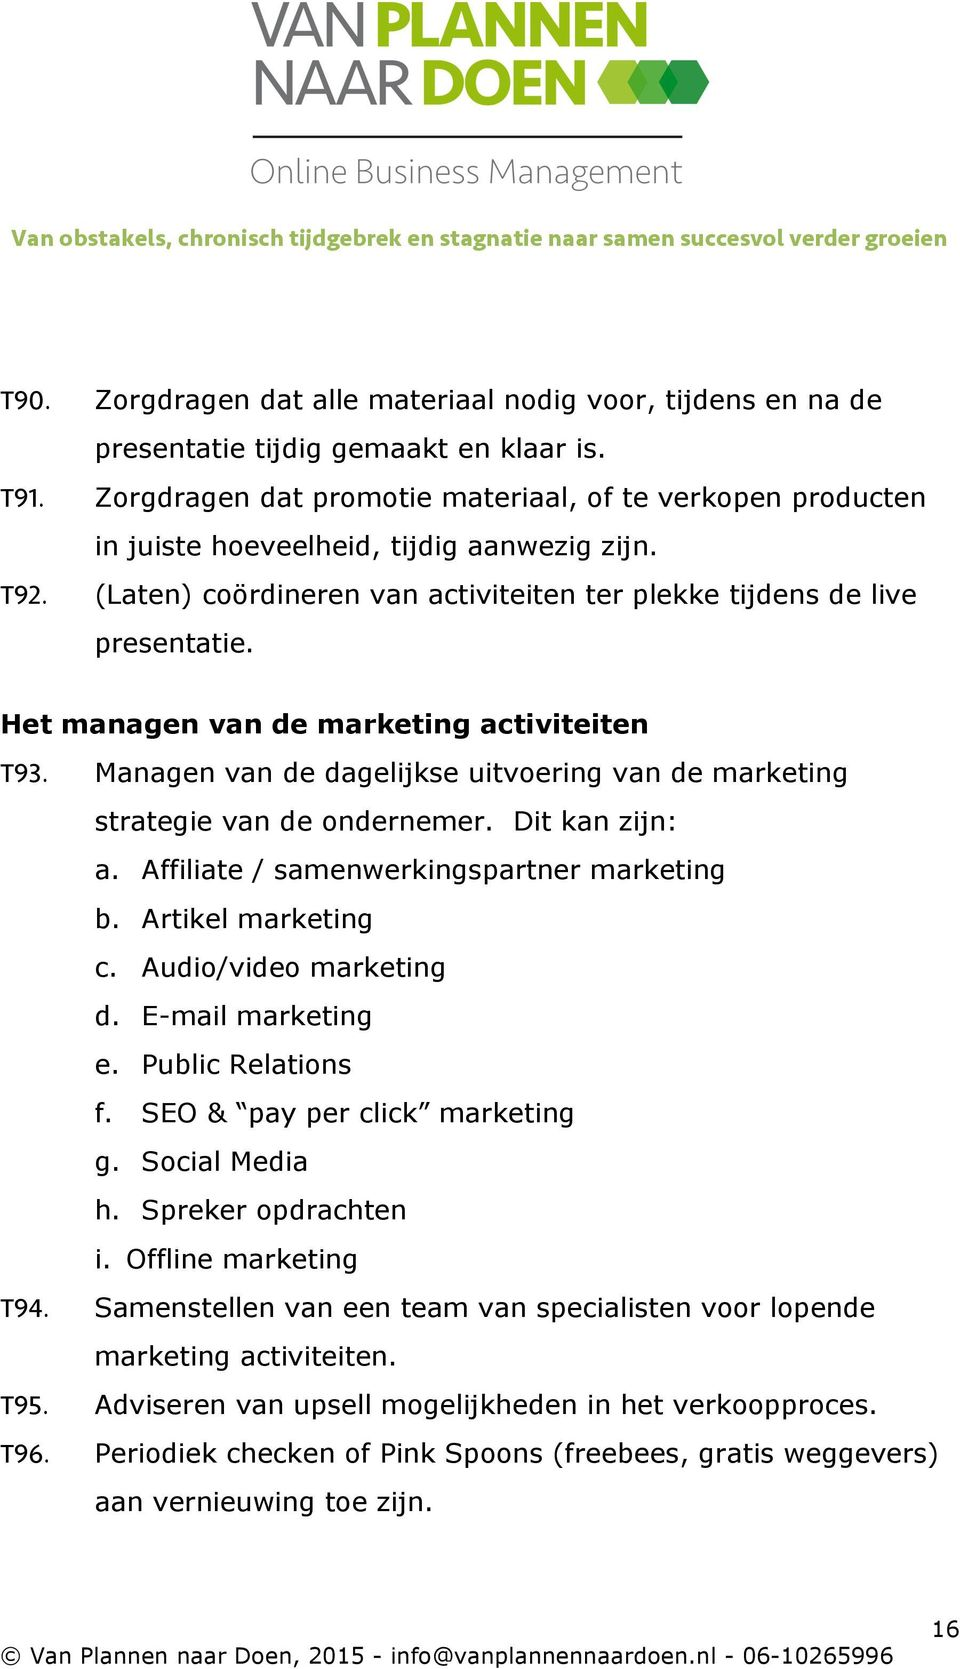 Het managen van de marketing activiteiten T93. Managen van de dagelijkse uitvoering van de marketing strategie van de ondernemer. Dit kan zijn: a. Affiliate / samenwerkingspartner marketing b.